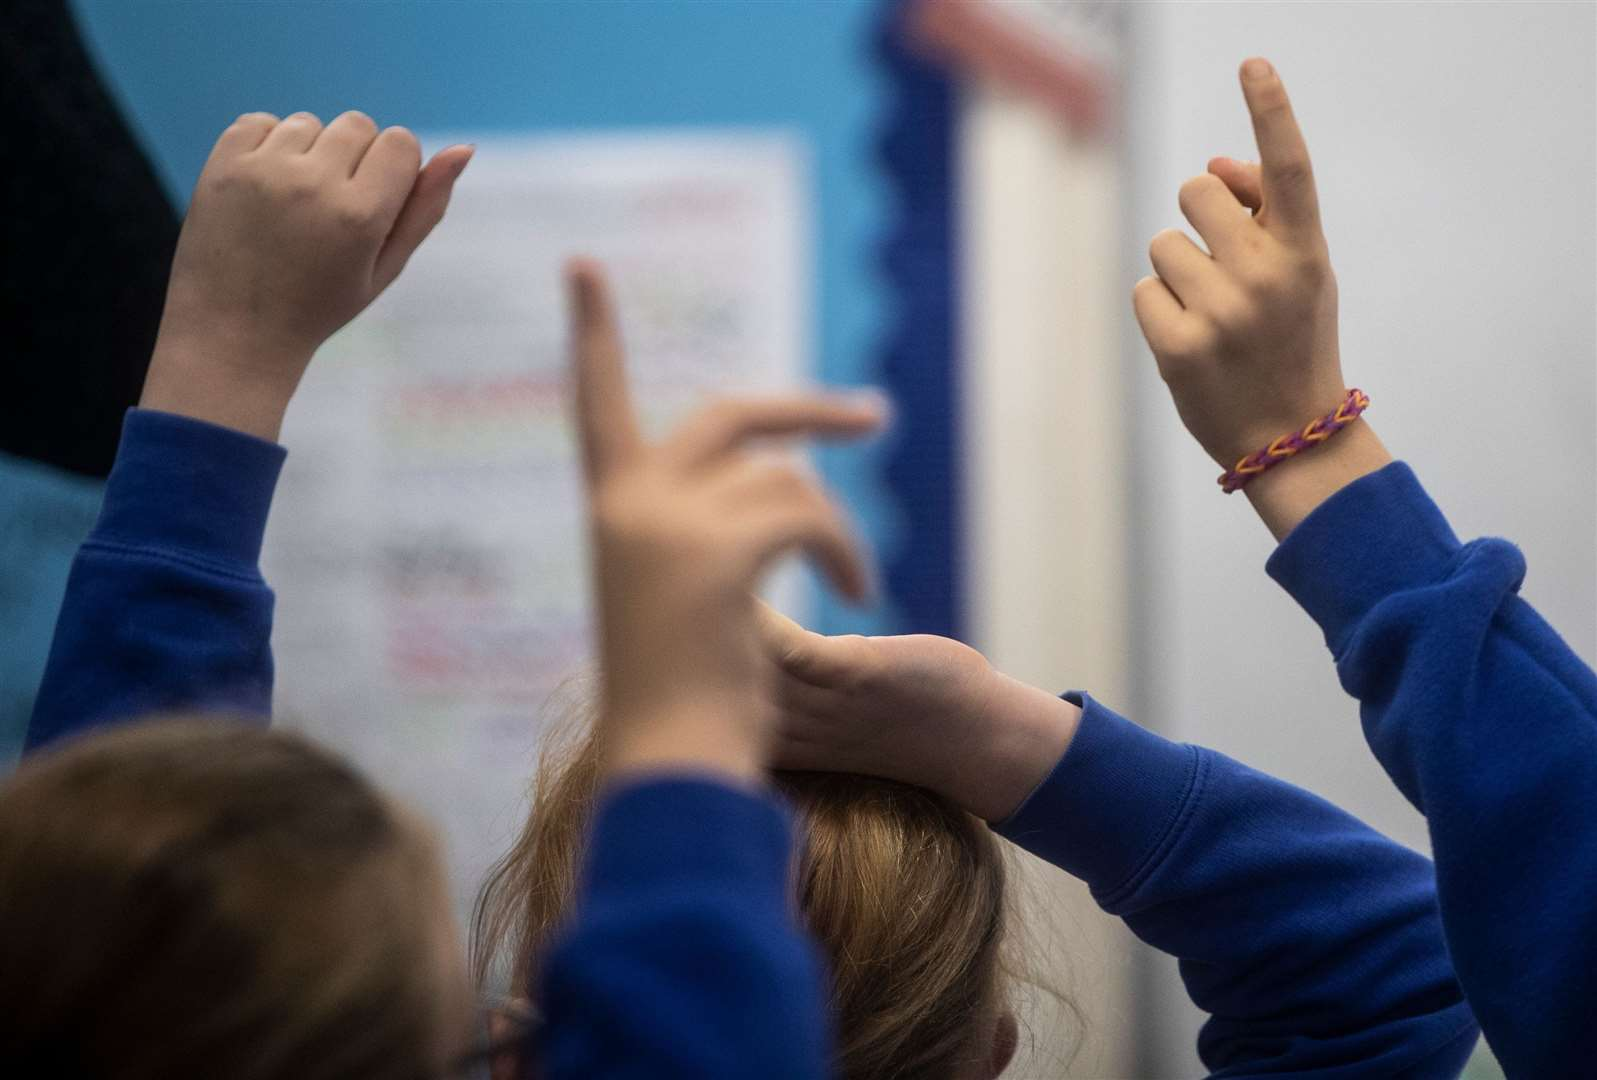 The school holidays is thought to have helped keep cases low since restrictions were eased in July